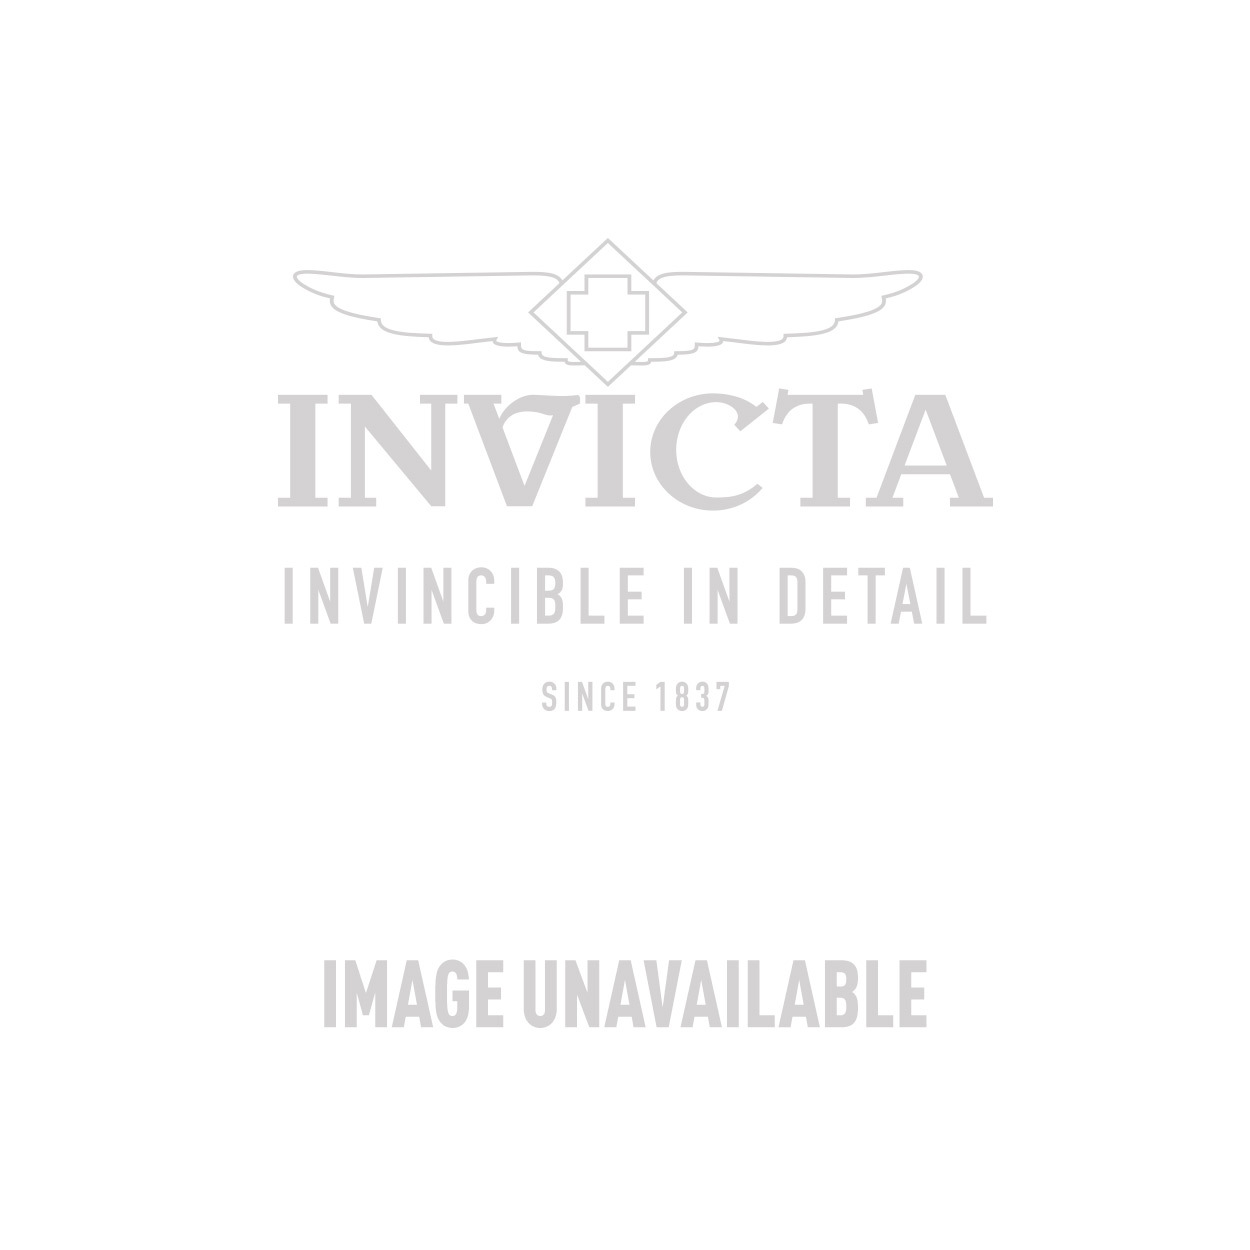 Invicta Pro Diver Swiss Movement Quartz Watch - Gold case with Gold tone Stainless Steel band - Model 20187